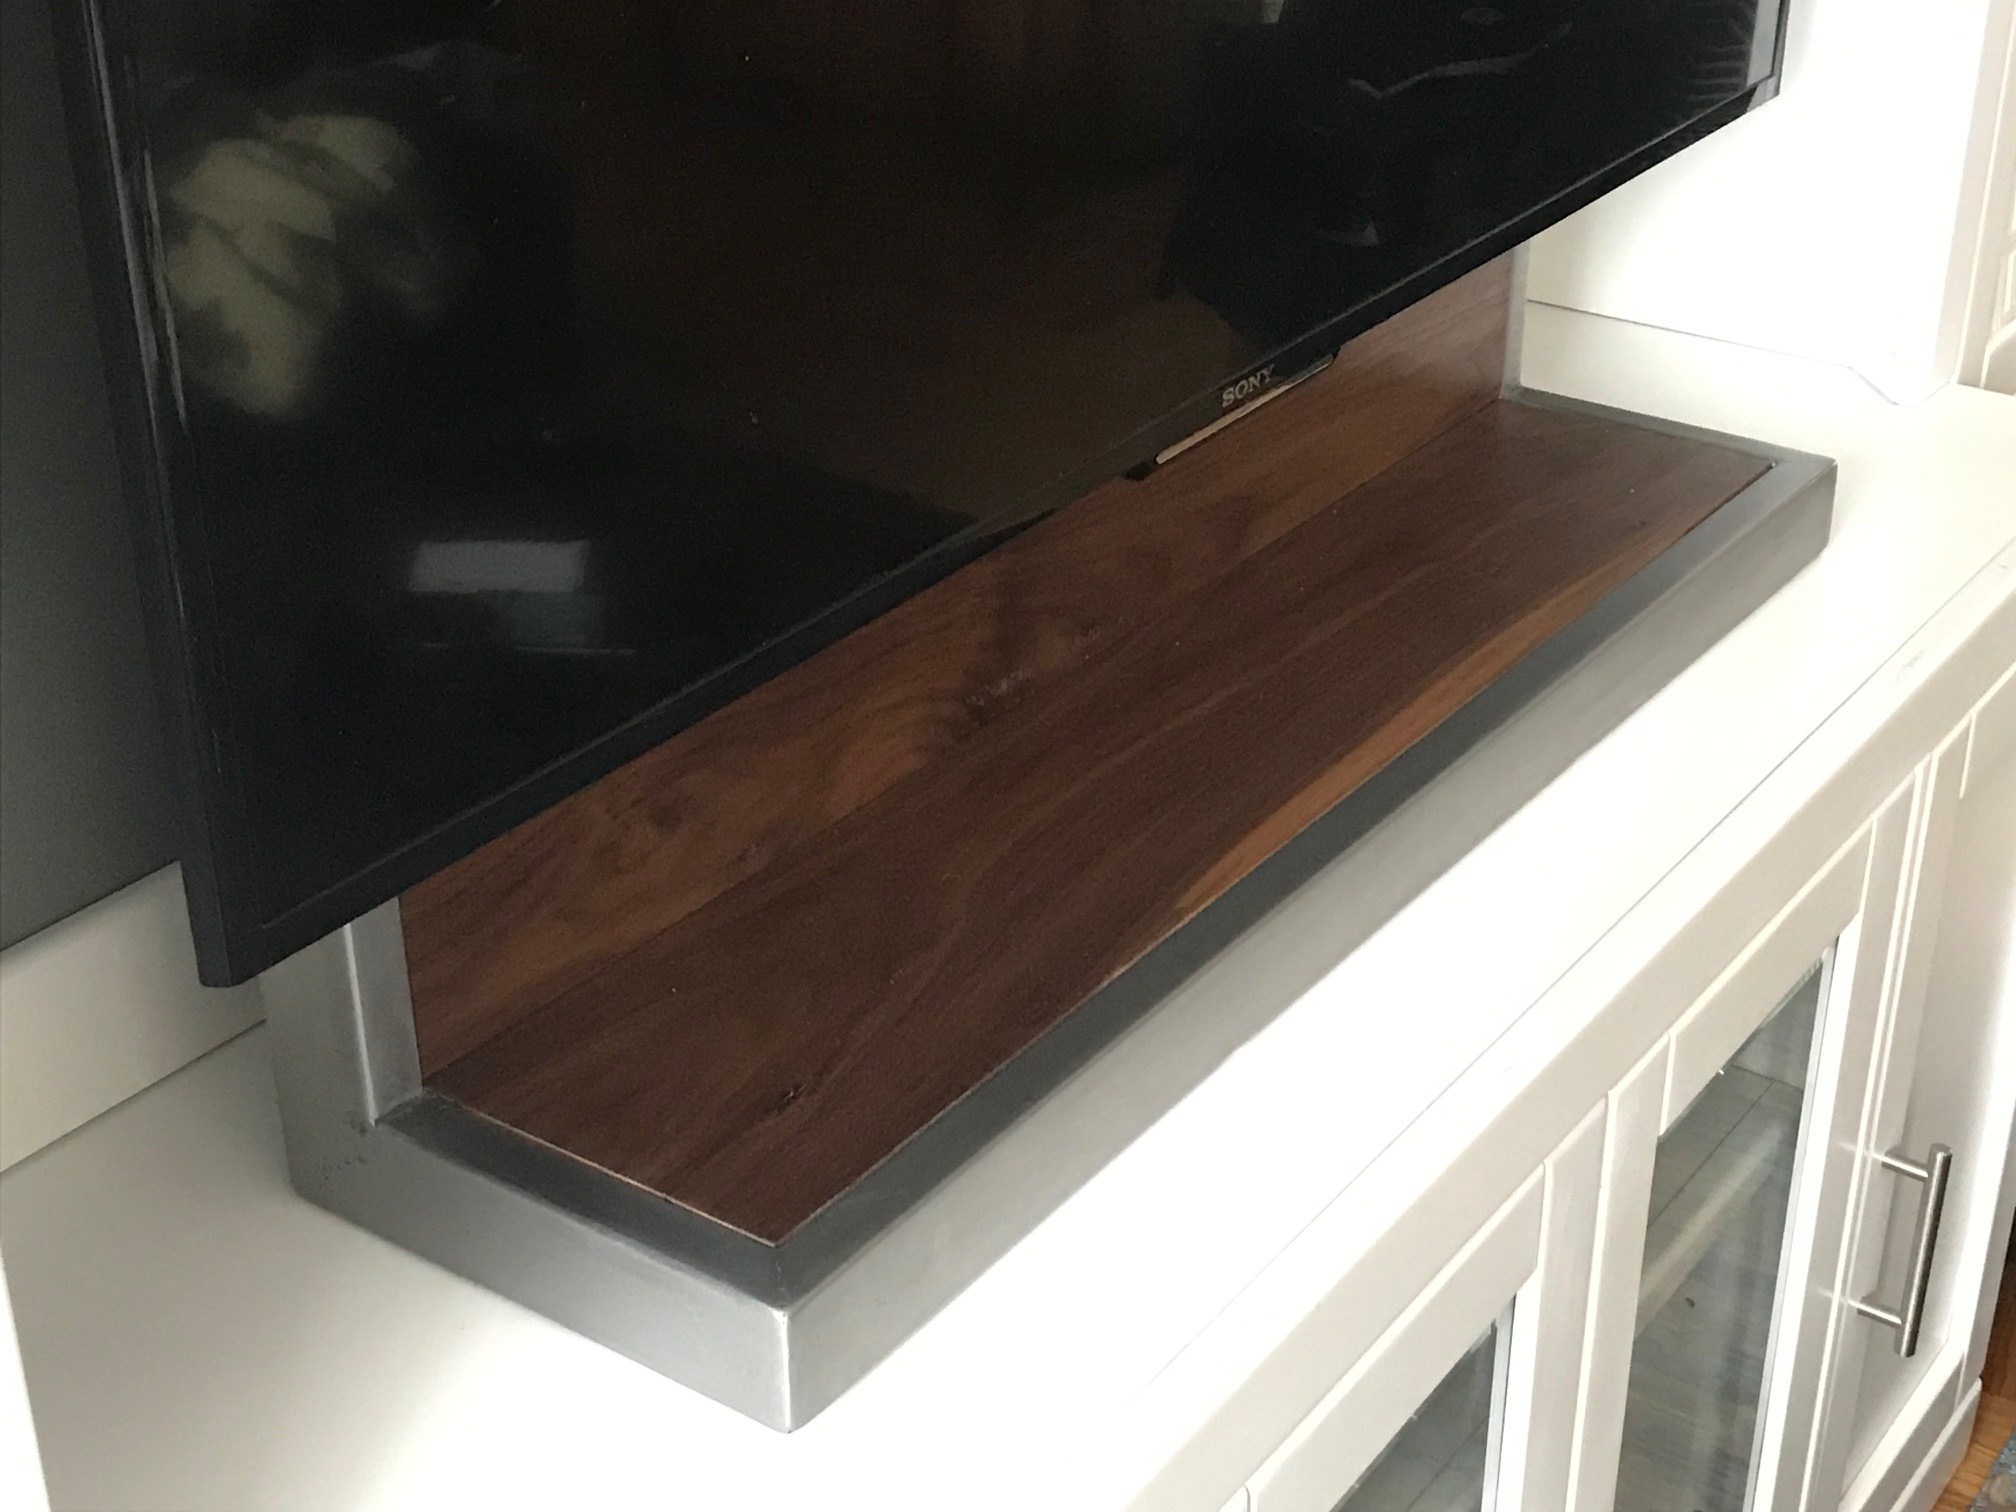 A TV stand designed and built by Dennis